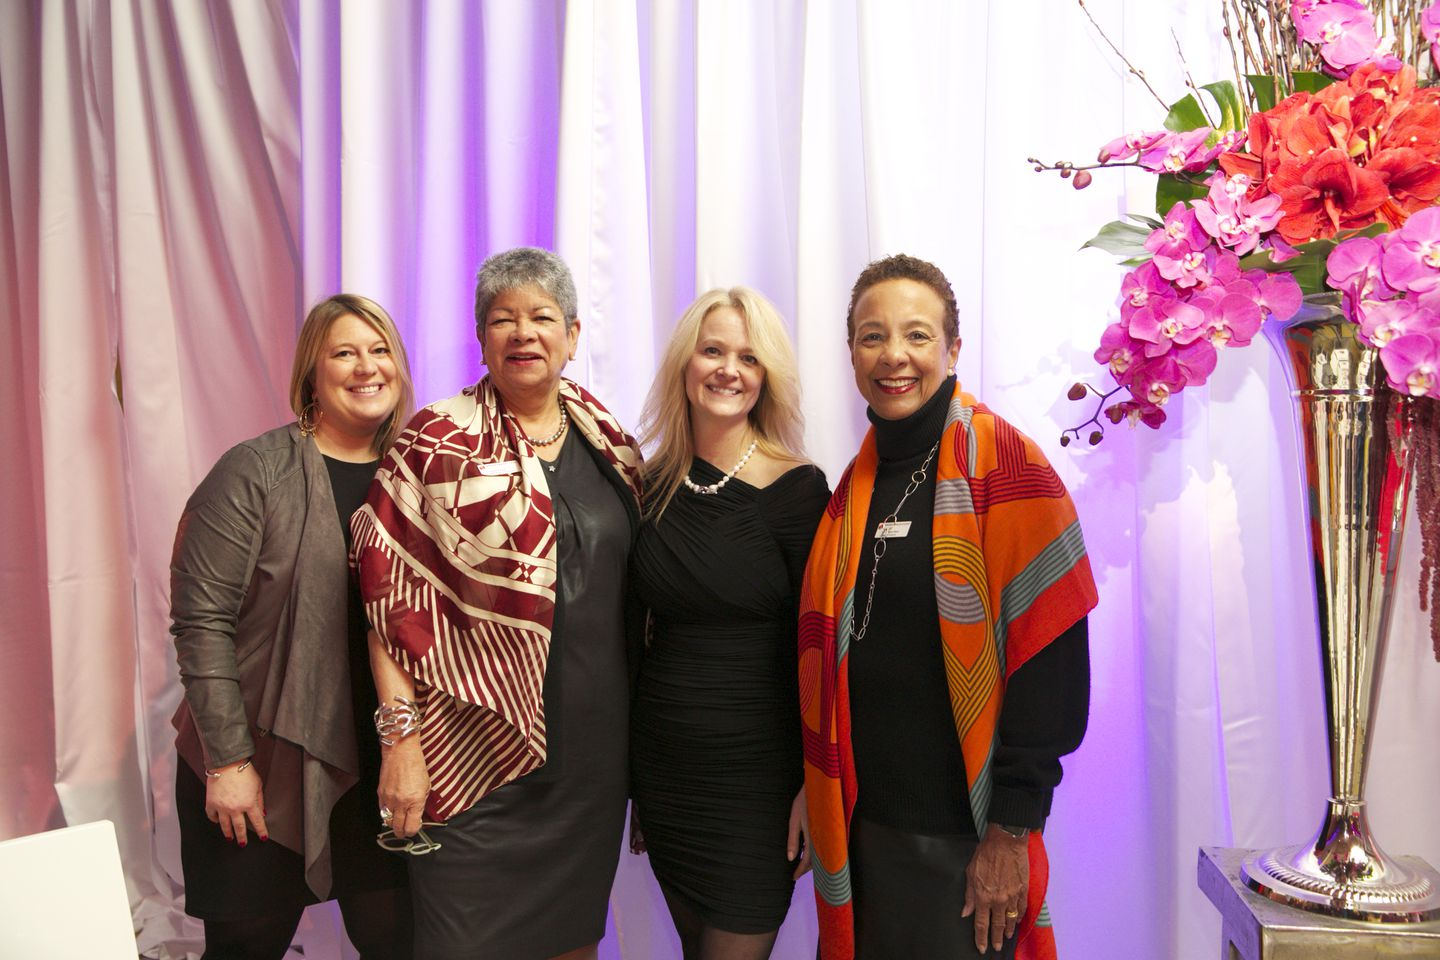 Fashion fans attend Dress for Success Boston runway show - The